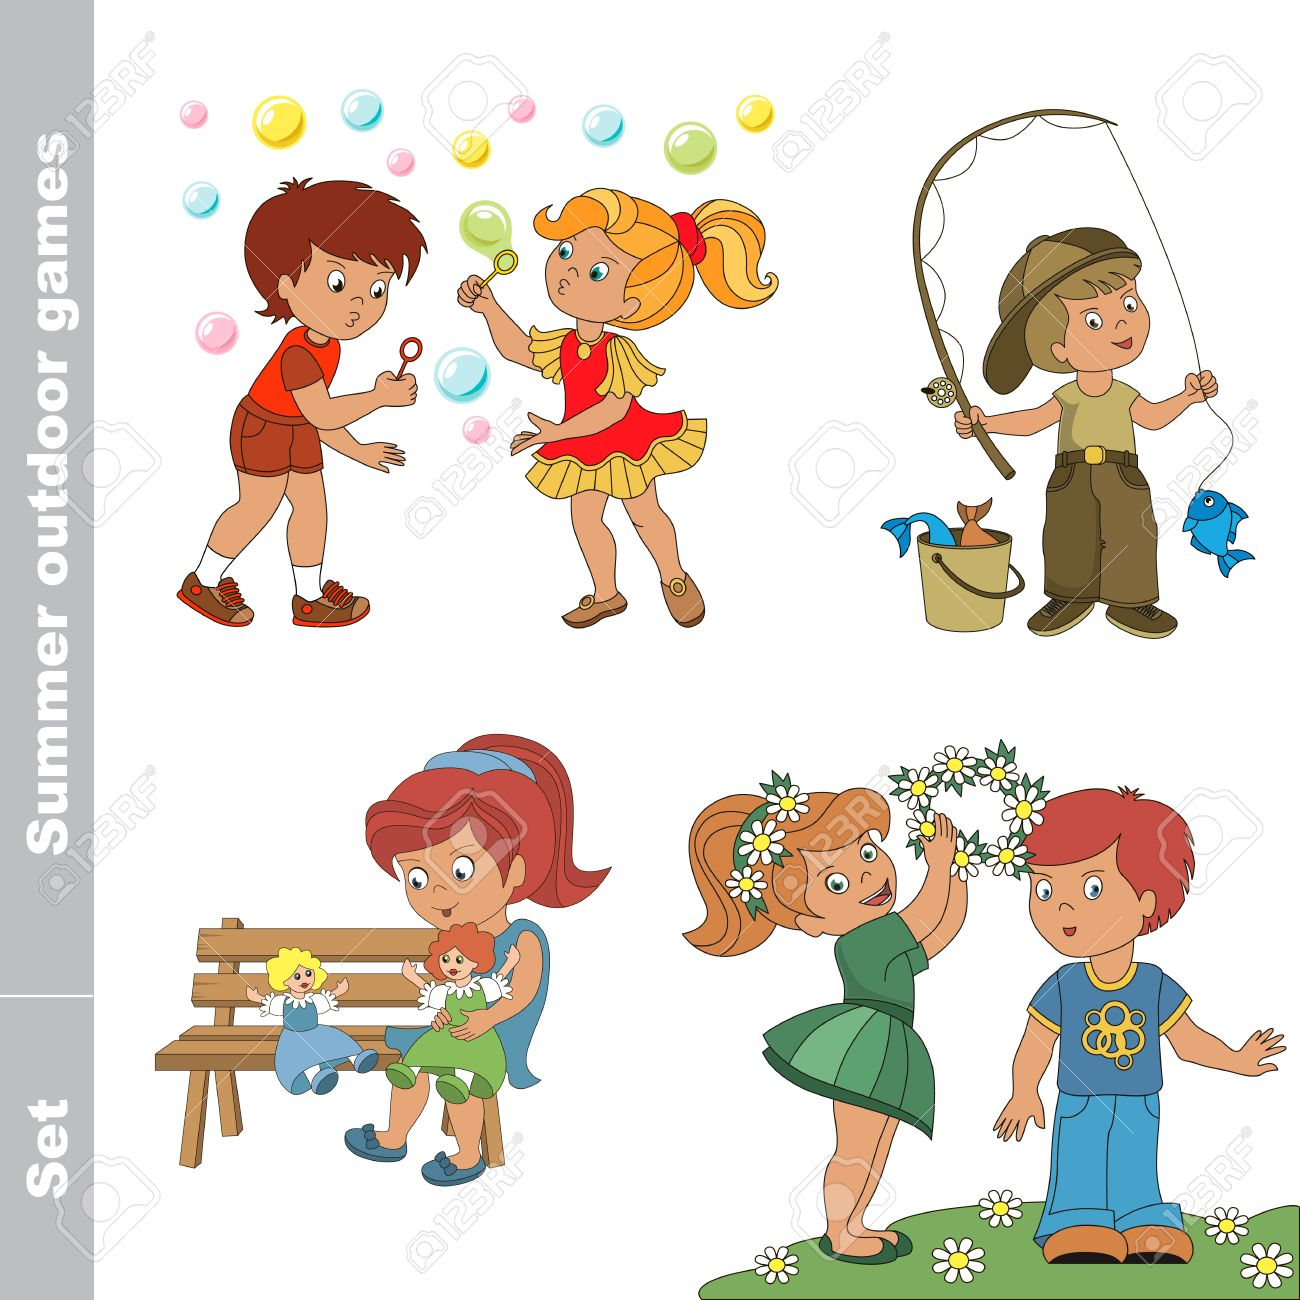 Boy Cartoon png download - 600*658 - Free Transparent Fishing Rods png  Download. - CleanPNG / KissPNG